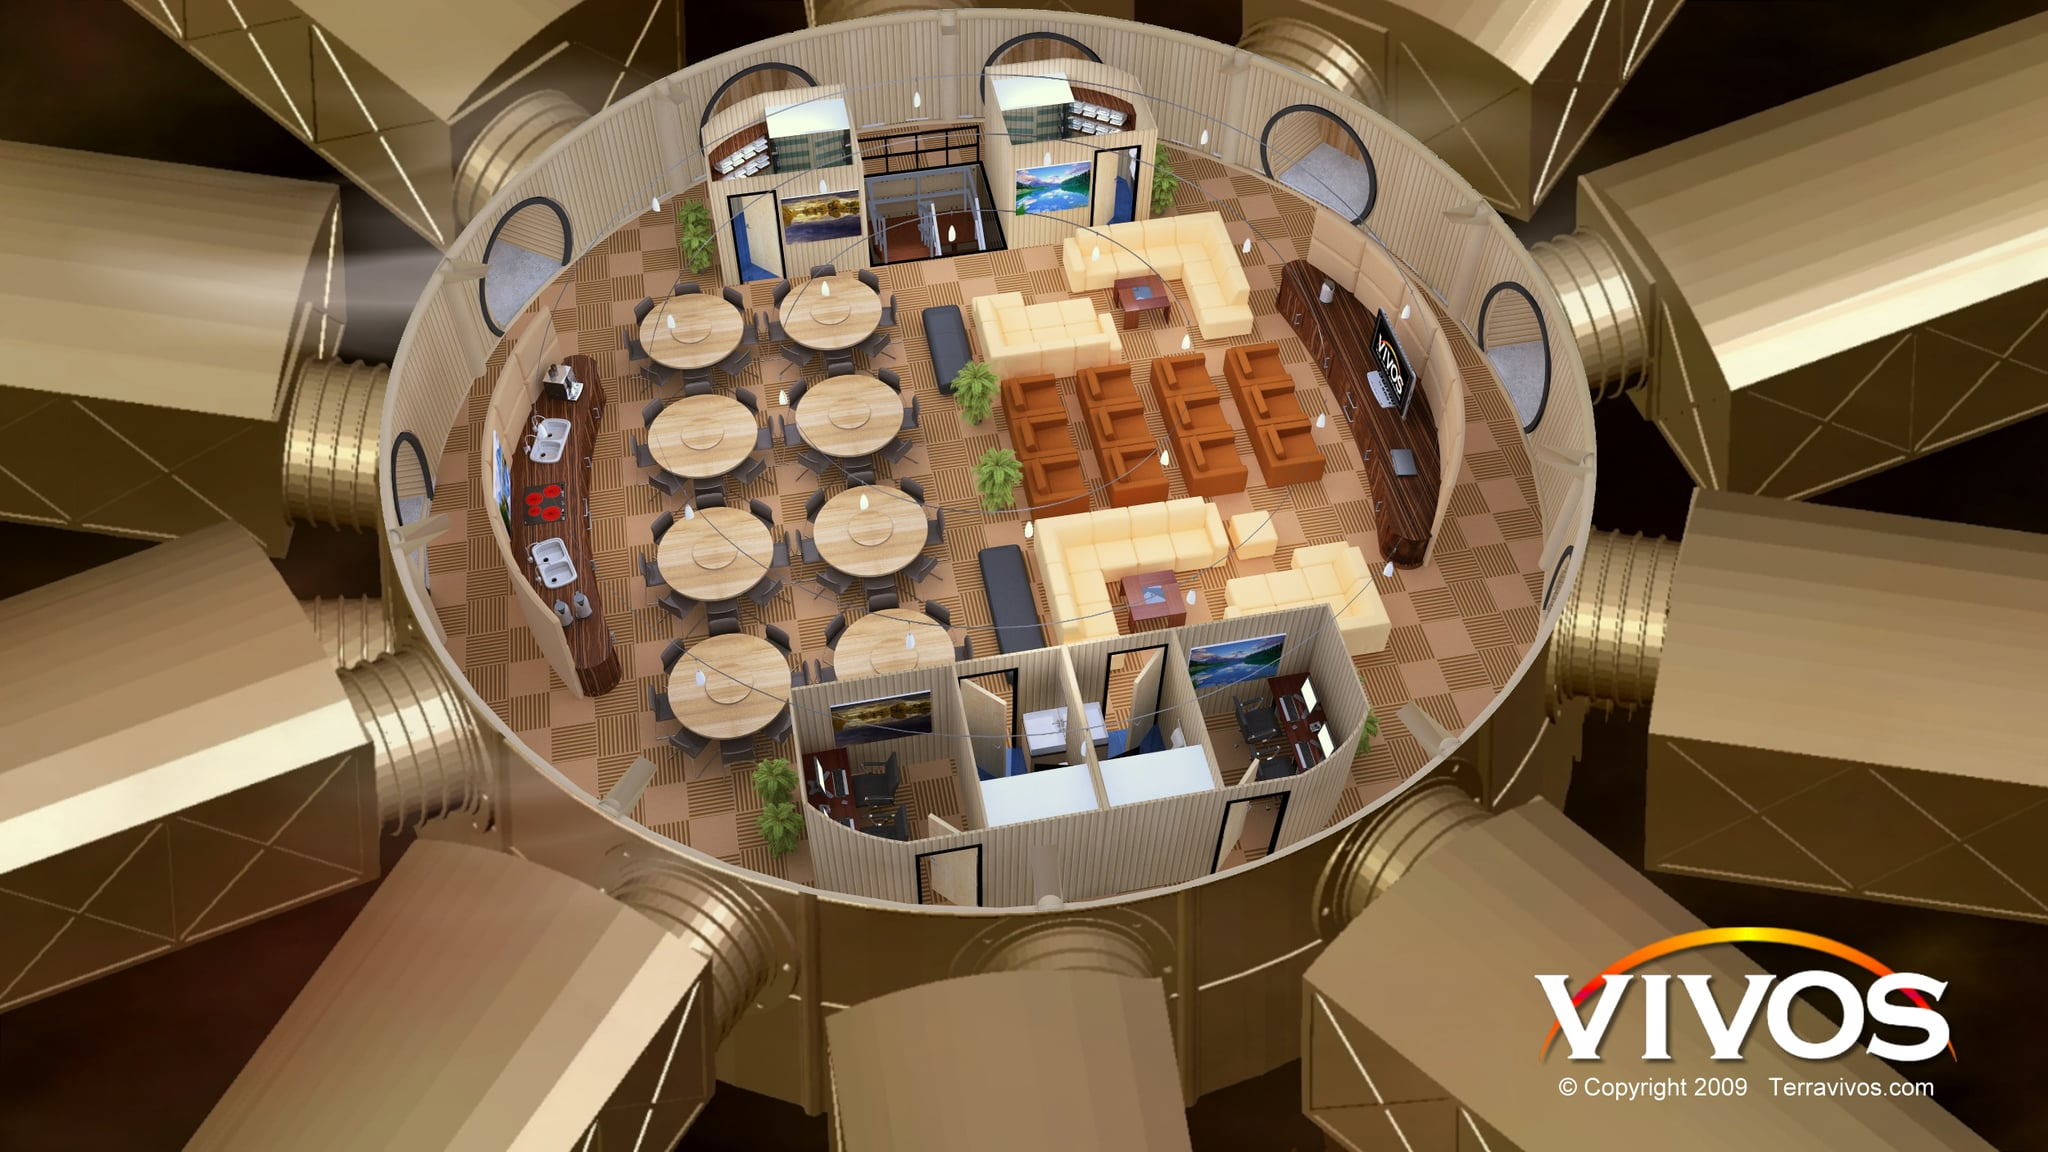 Photos of the Vivos Luxury Bunker